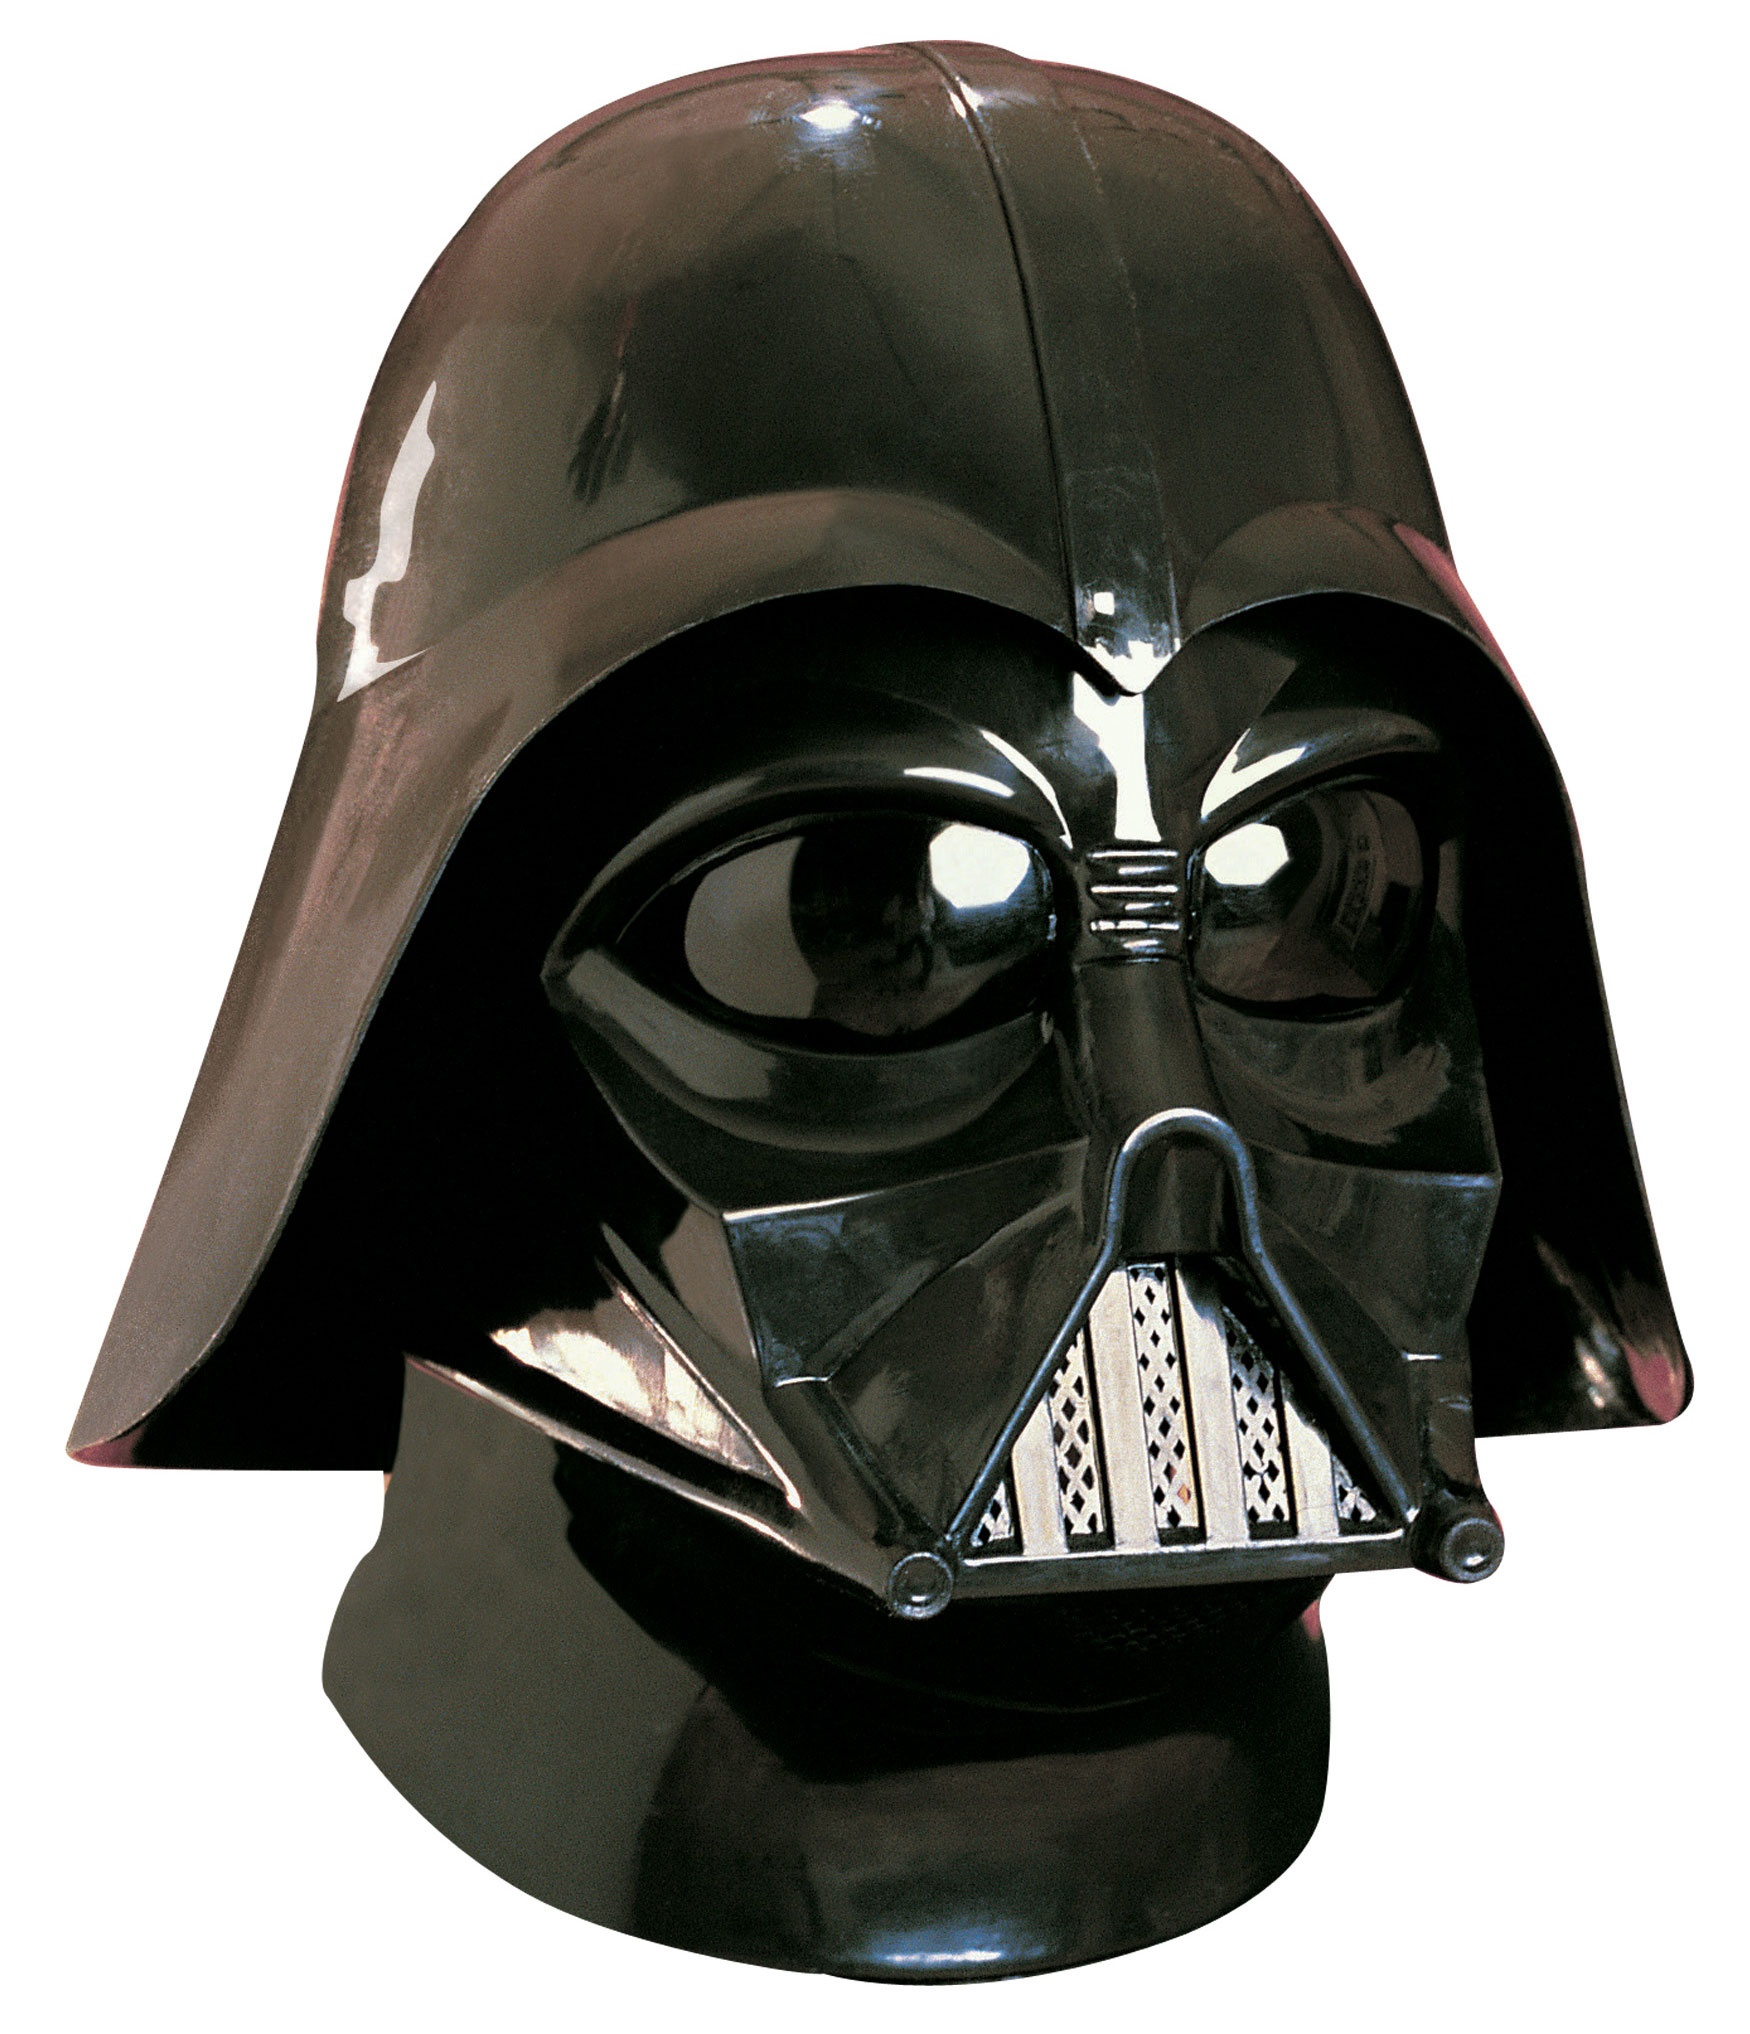 deluxe darth vader two piece full star wars mask mr. Black Bedroom Furniture Sets. Home Design Ideas